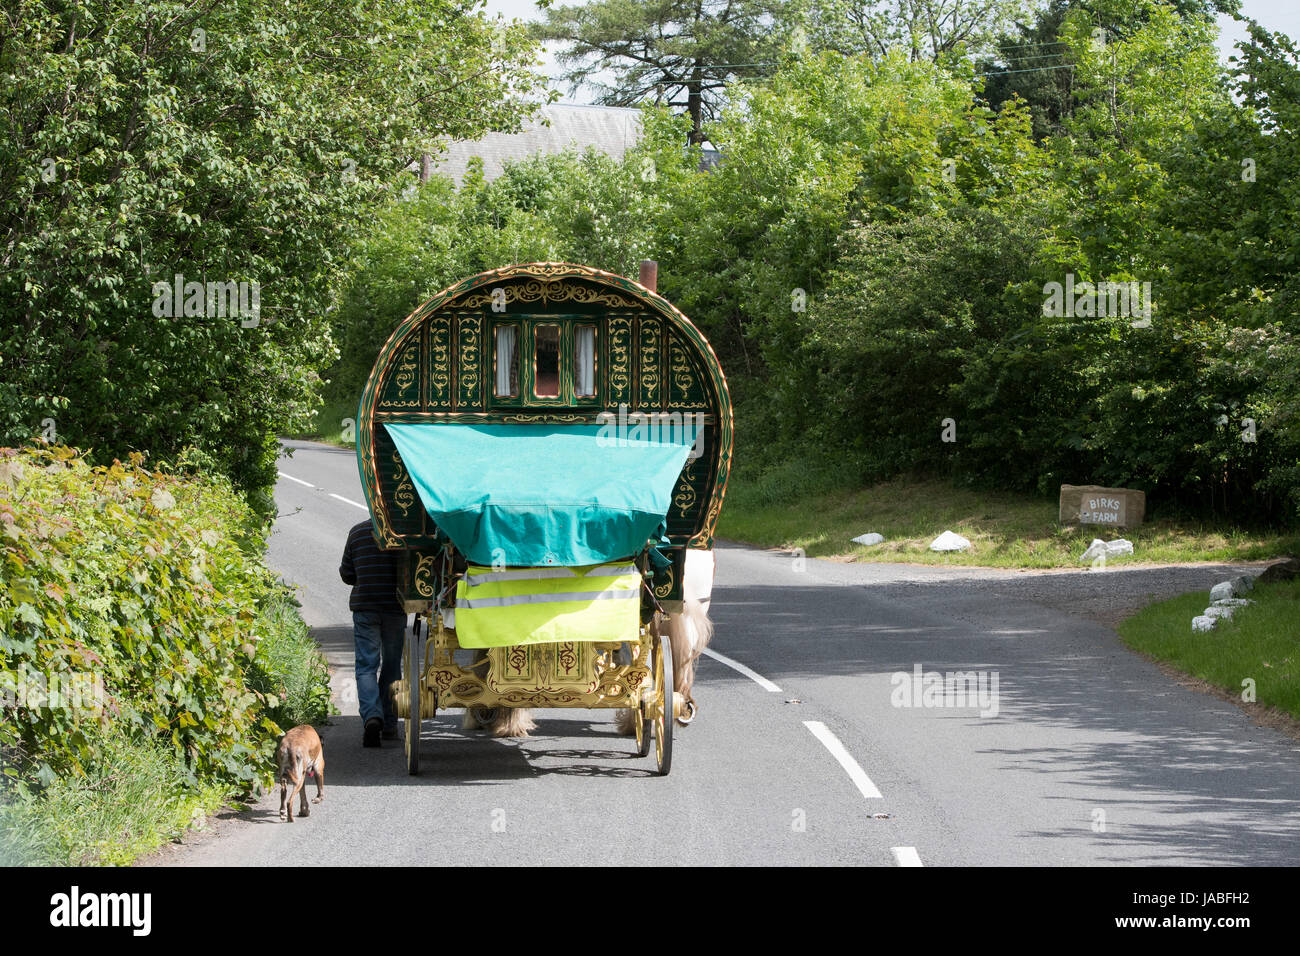 Gypsy travellers with horse drawn caravan on the A683 near Cautley, Cumbria, UK. Stock Photo